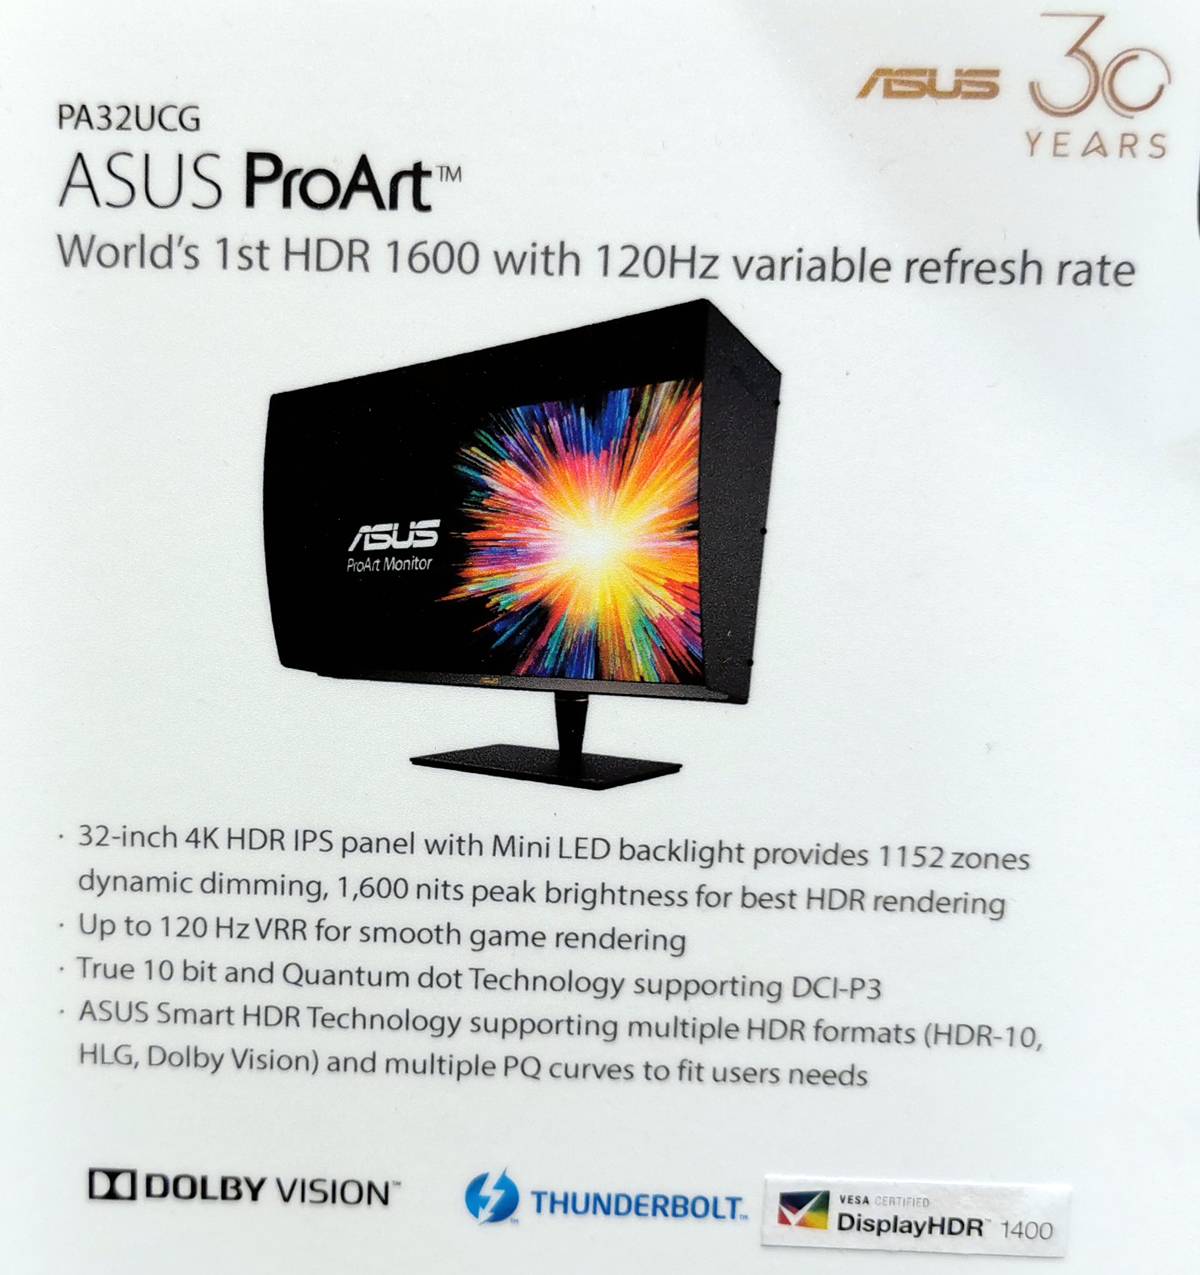 ASUS ProArt PA32UCG: The Ultimate Mini LED 4K 120 Hz Monitor